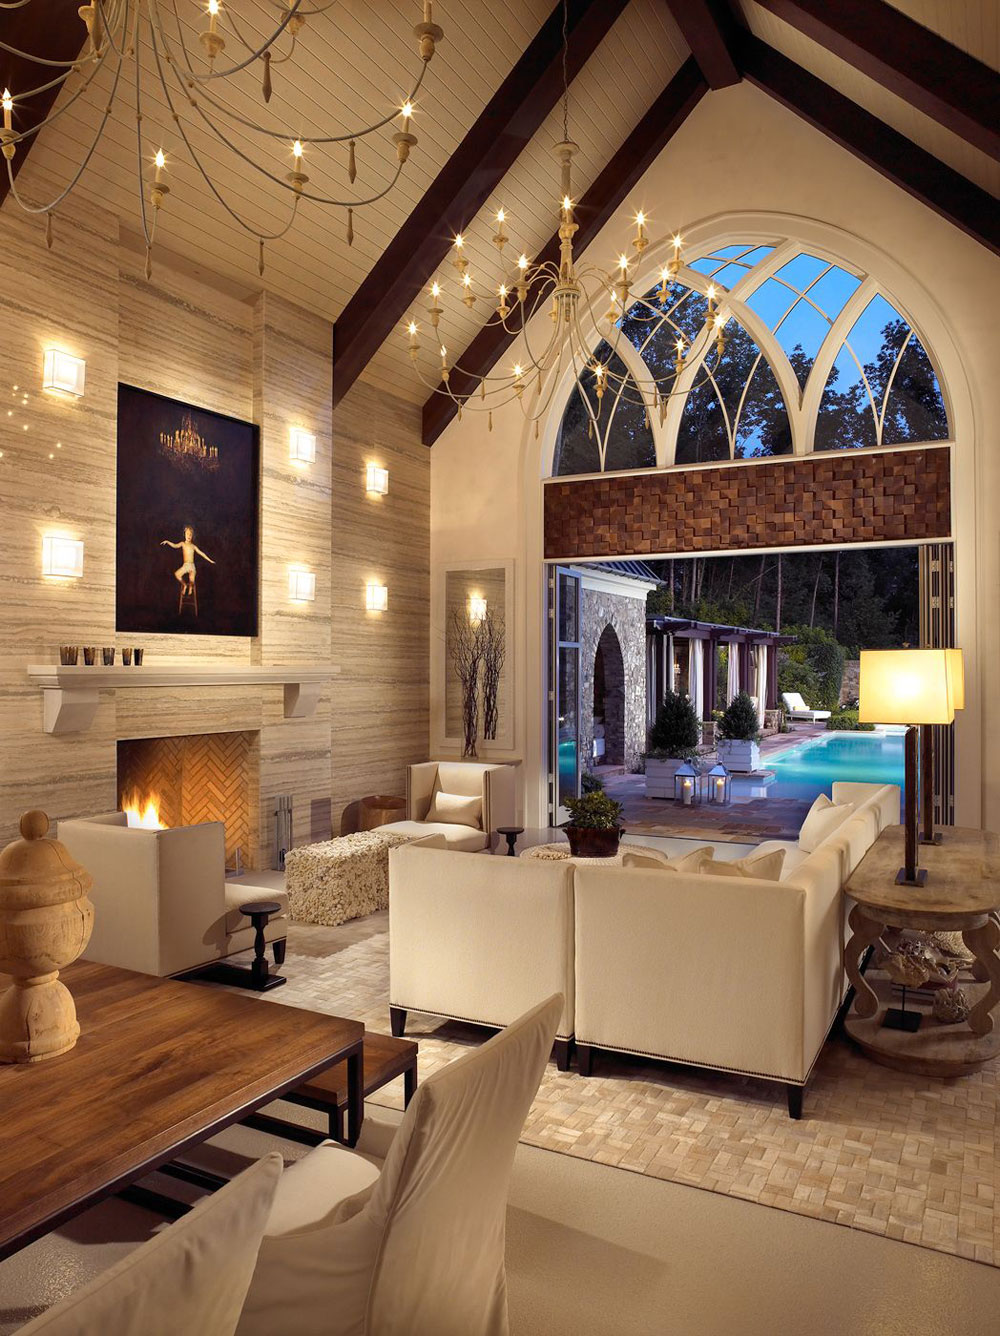 Vaulted Ceiling Living Room Design Ideas - Vaulted ceiling living room